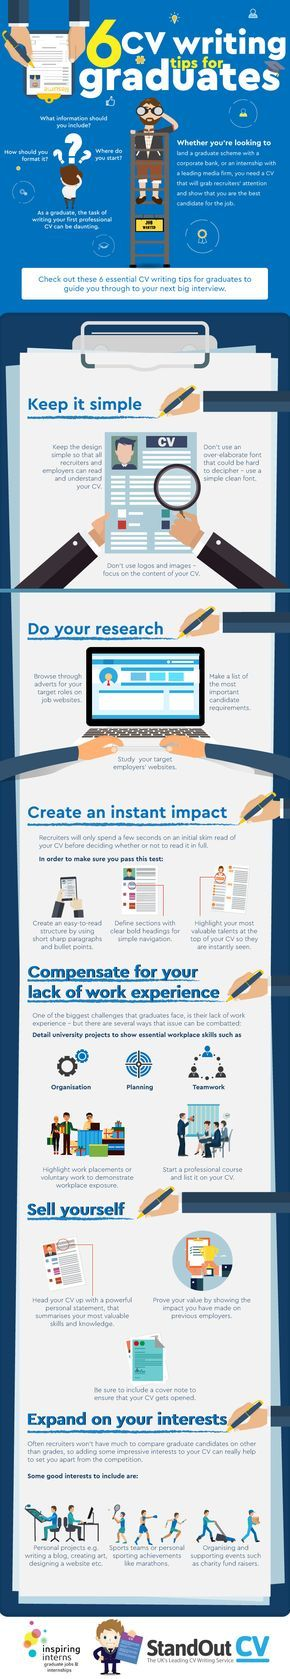 25+ unique Cv writing tips ideas on Pinterest Resume writing - guide to create resume